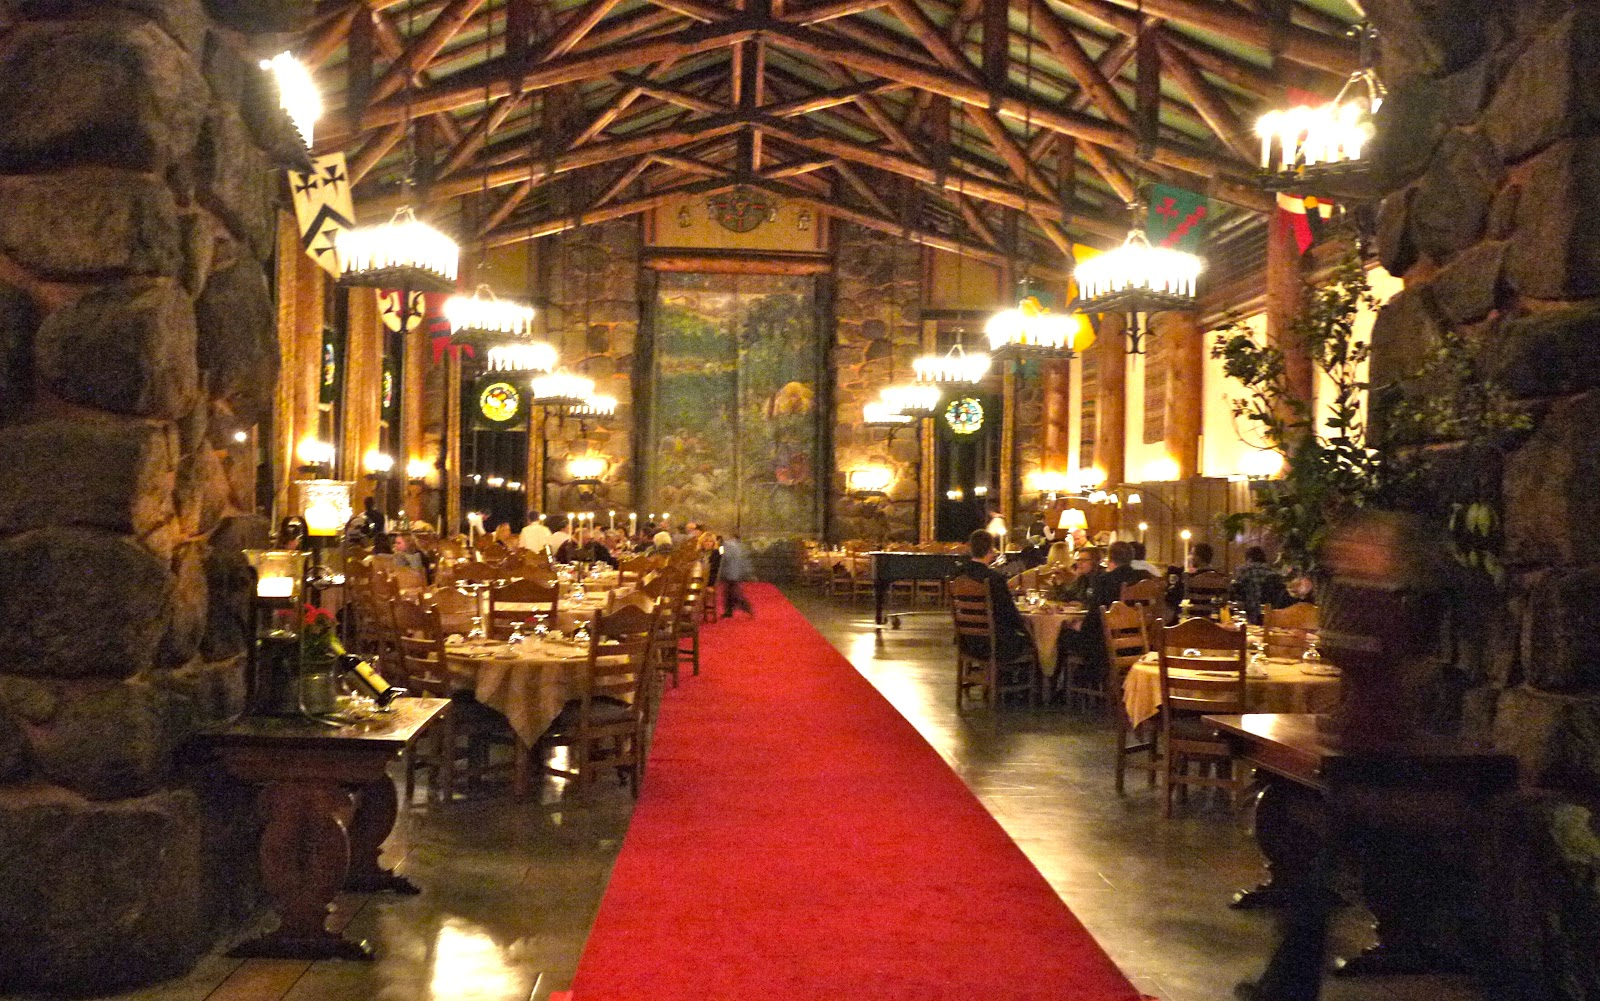 Smitten by Food: Ahwahnee Dining Room @ Yosemite National Park